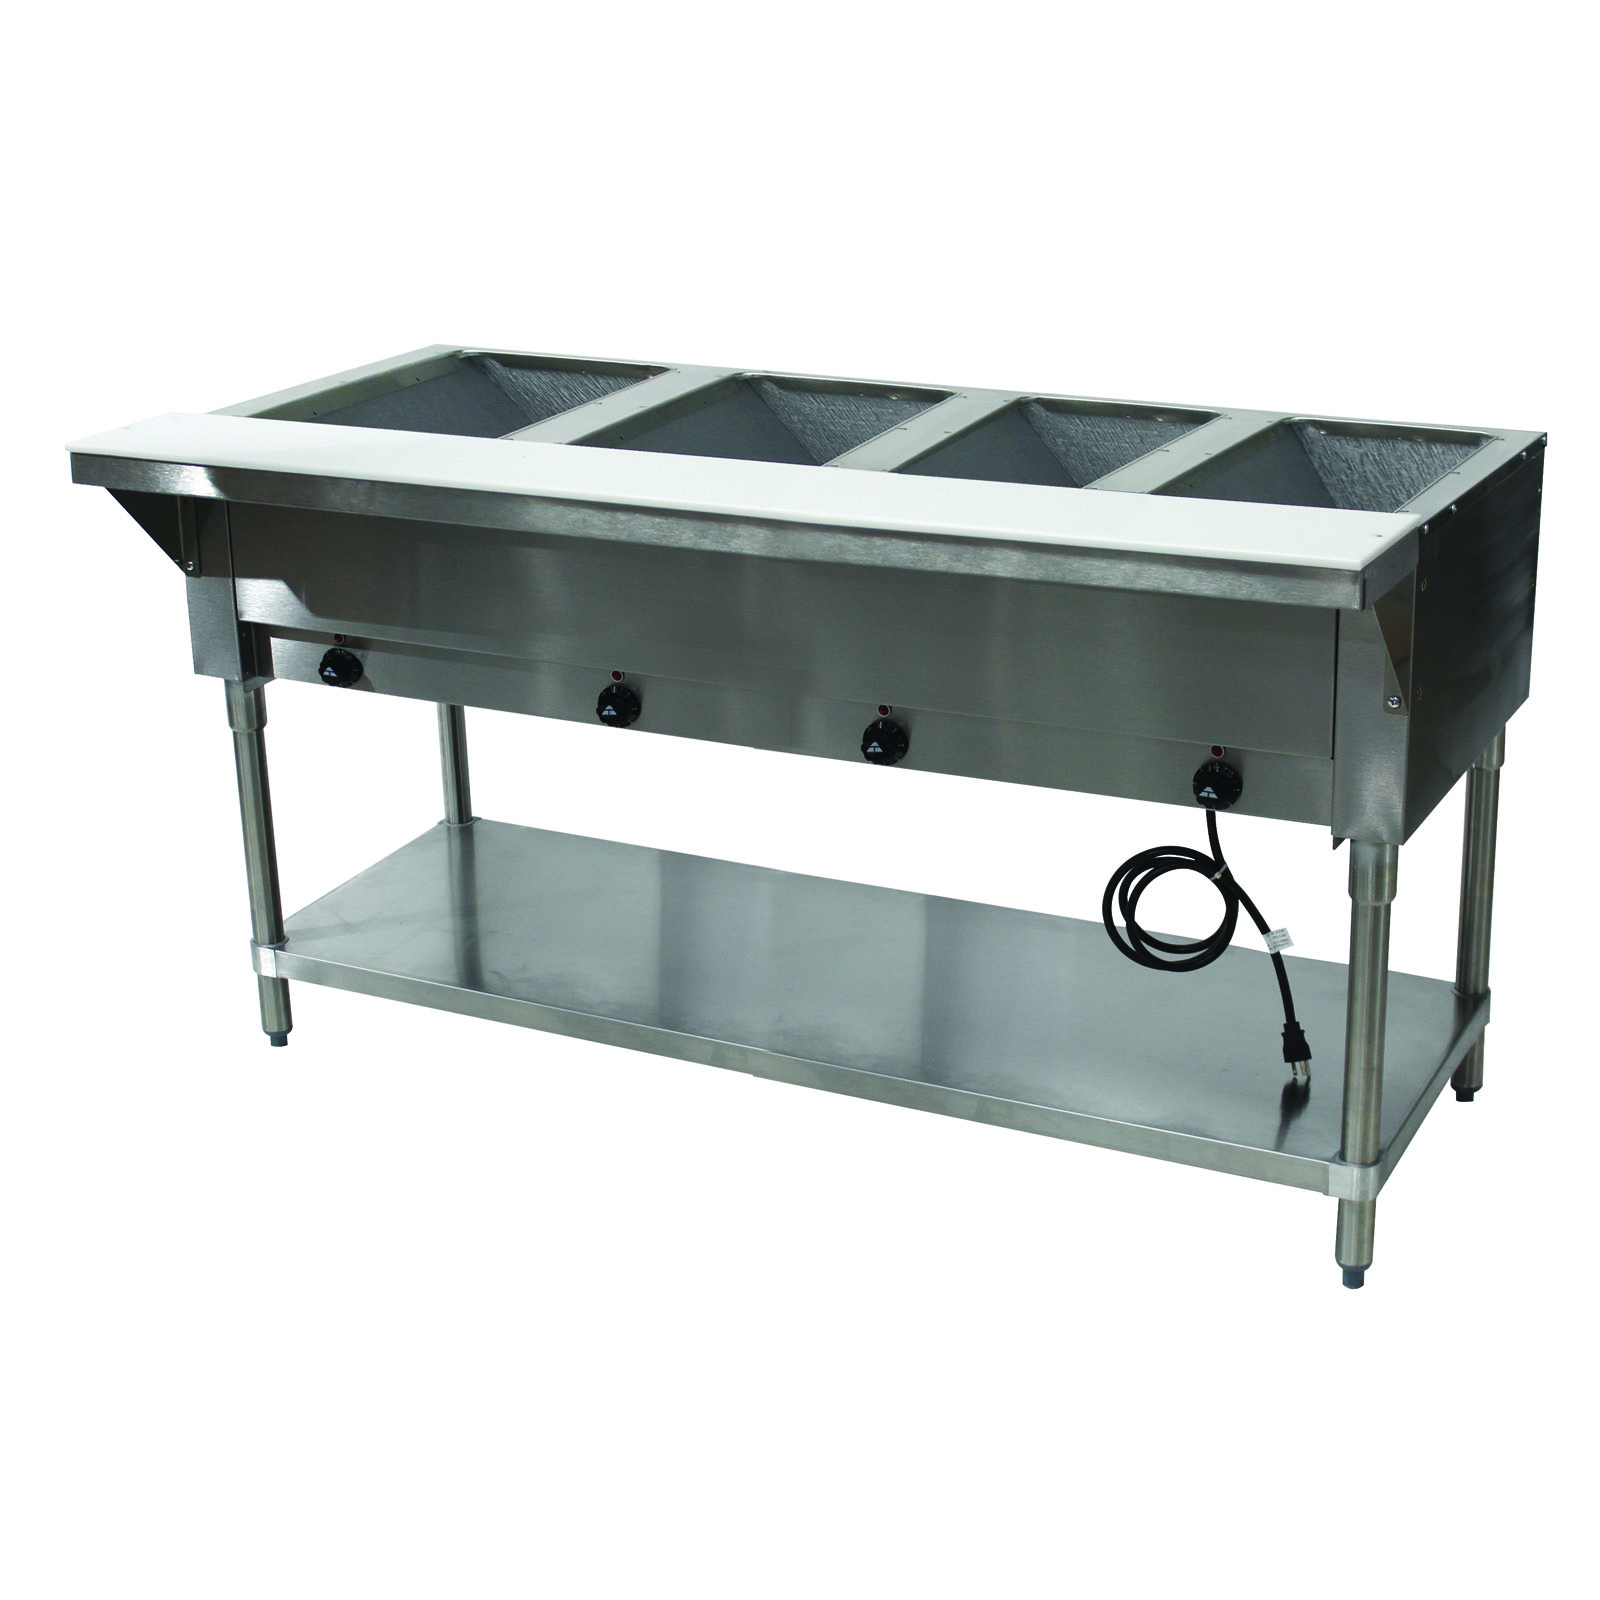 Advance Tabco HF-4E-240 serving counter, hot food, electric